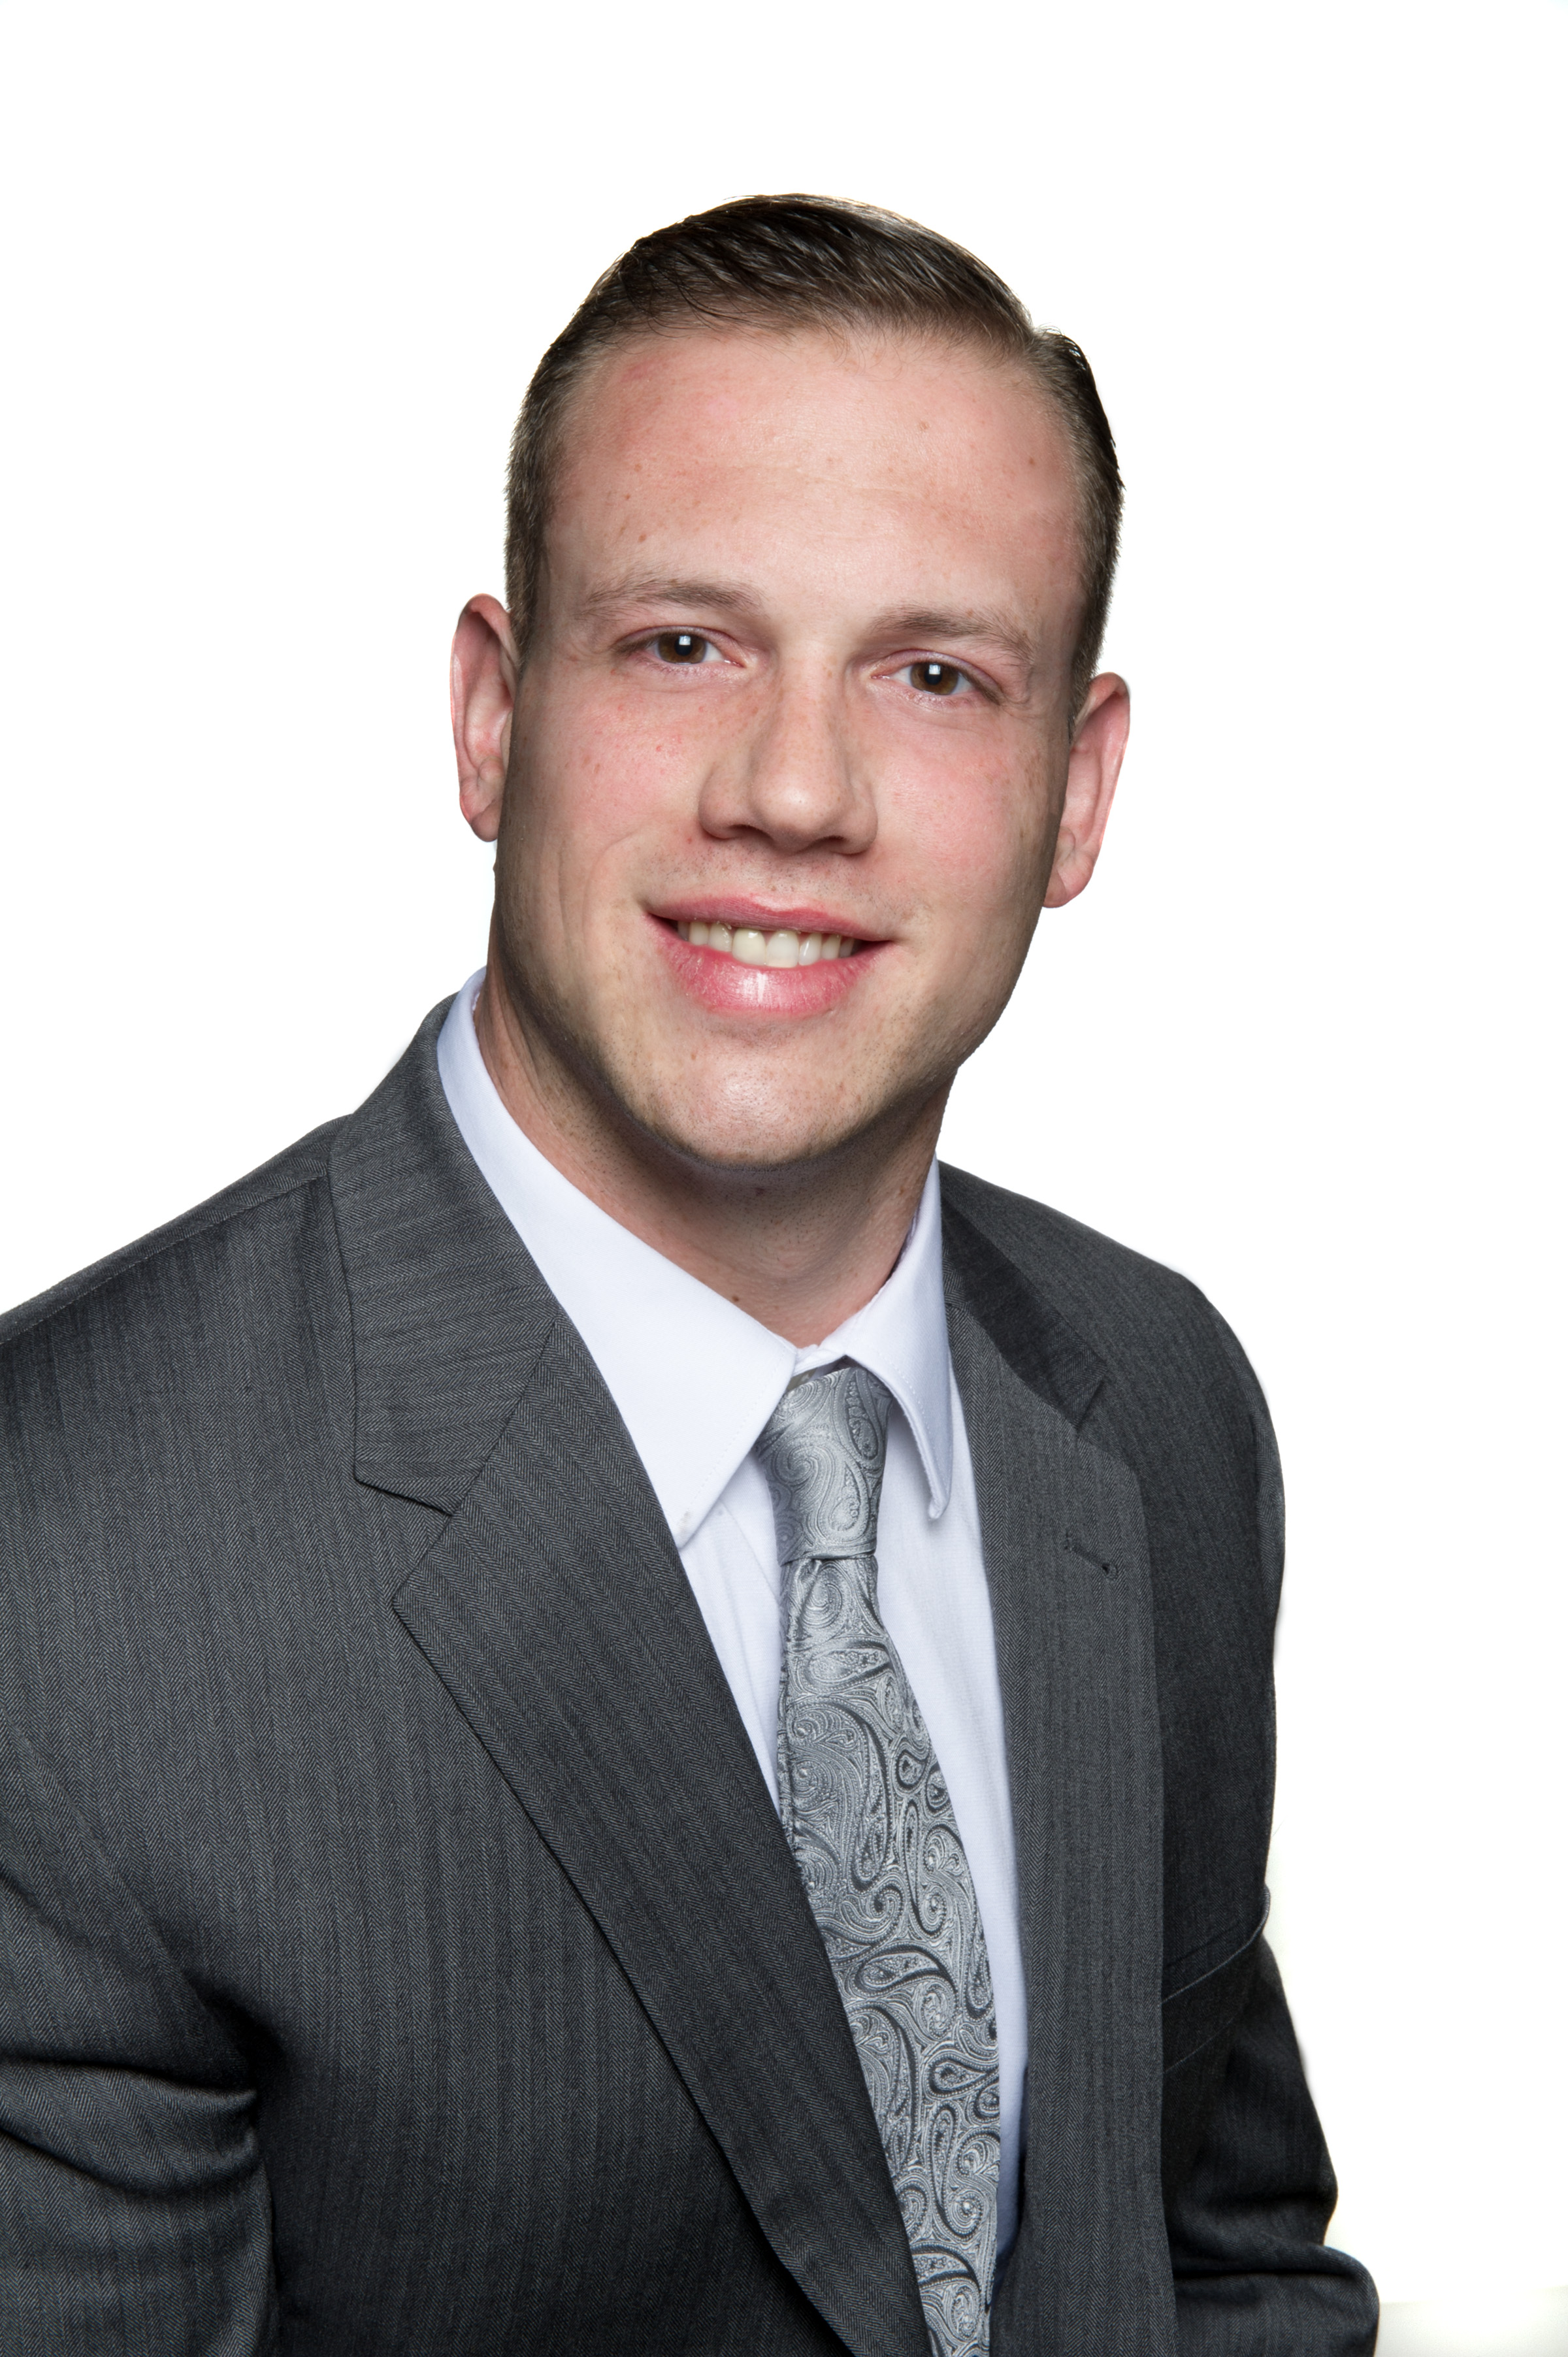 Thomas Scott - Residential Mortgage Lender - photo